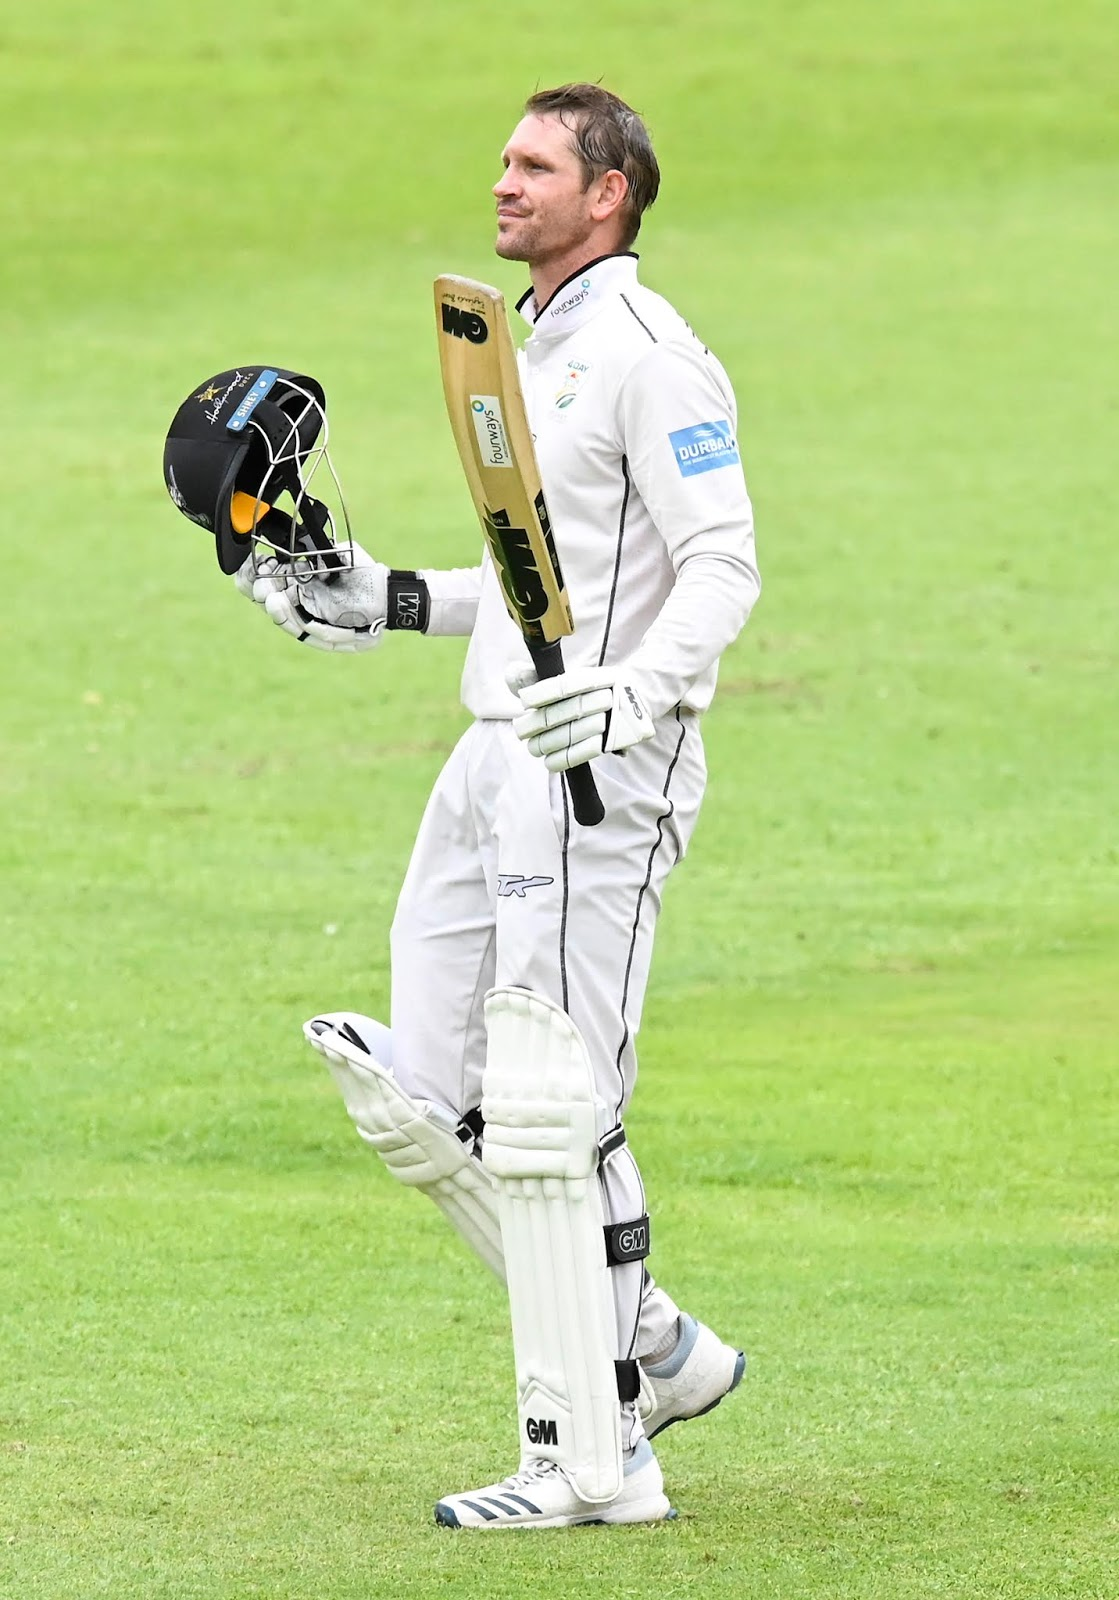 Sarel Erwee - Raising his bat after scoring a century for the Hollywoodbets Dolphins in their 4-Day clash with the VKB Knights